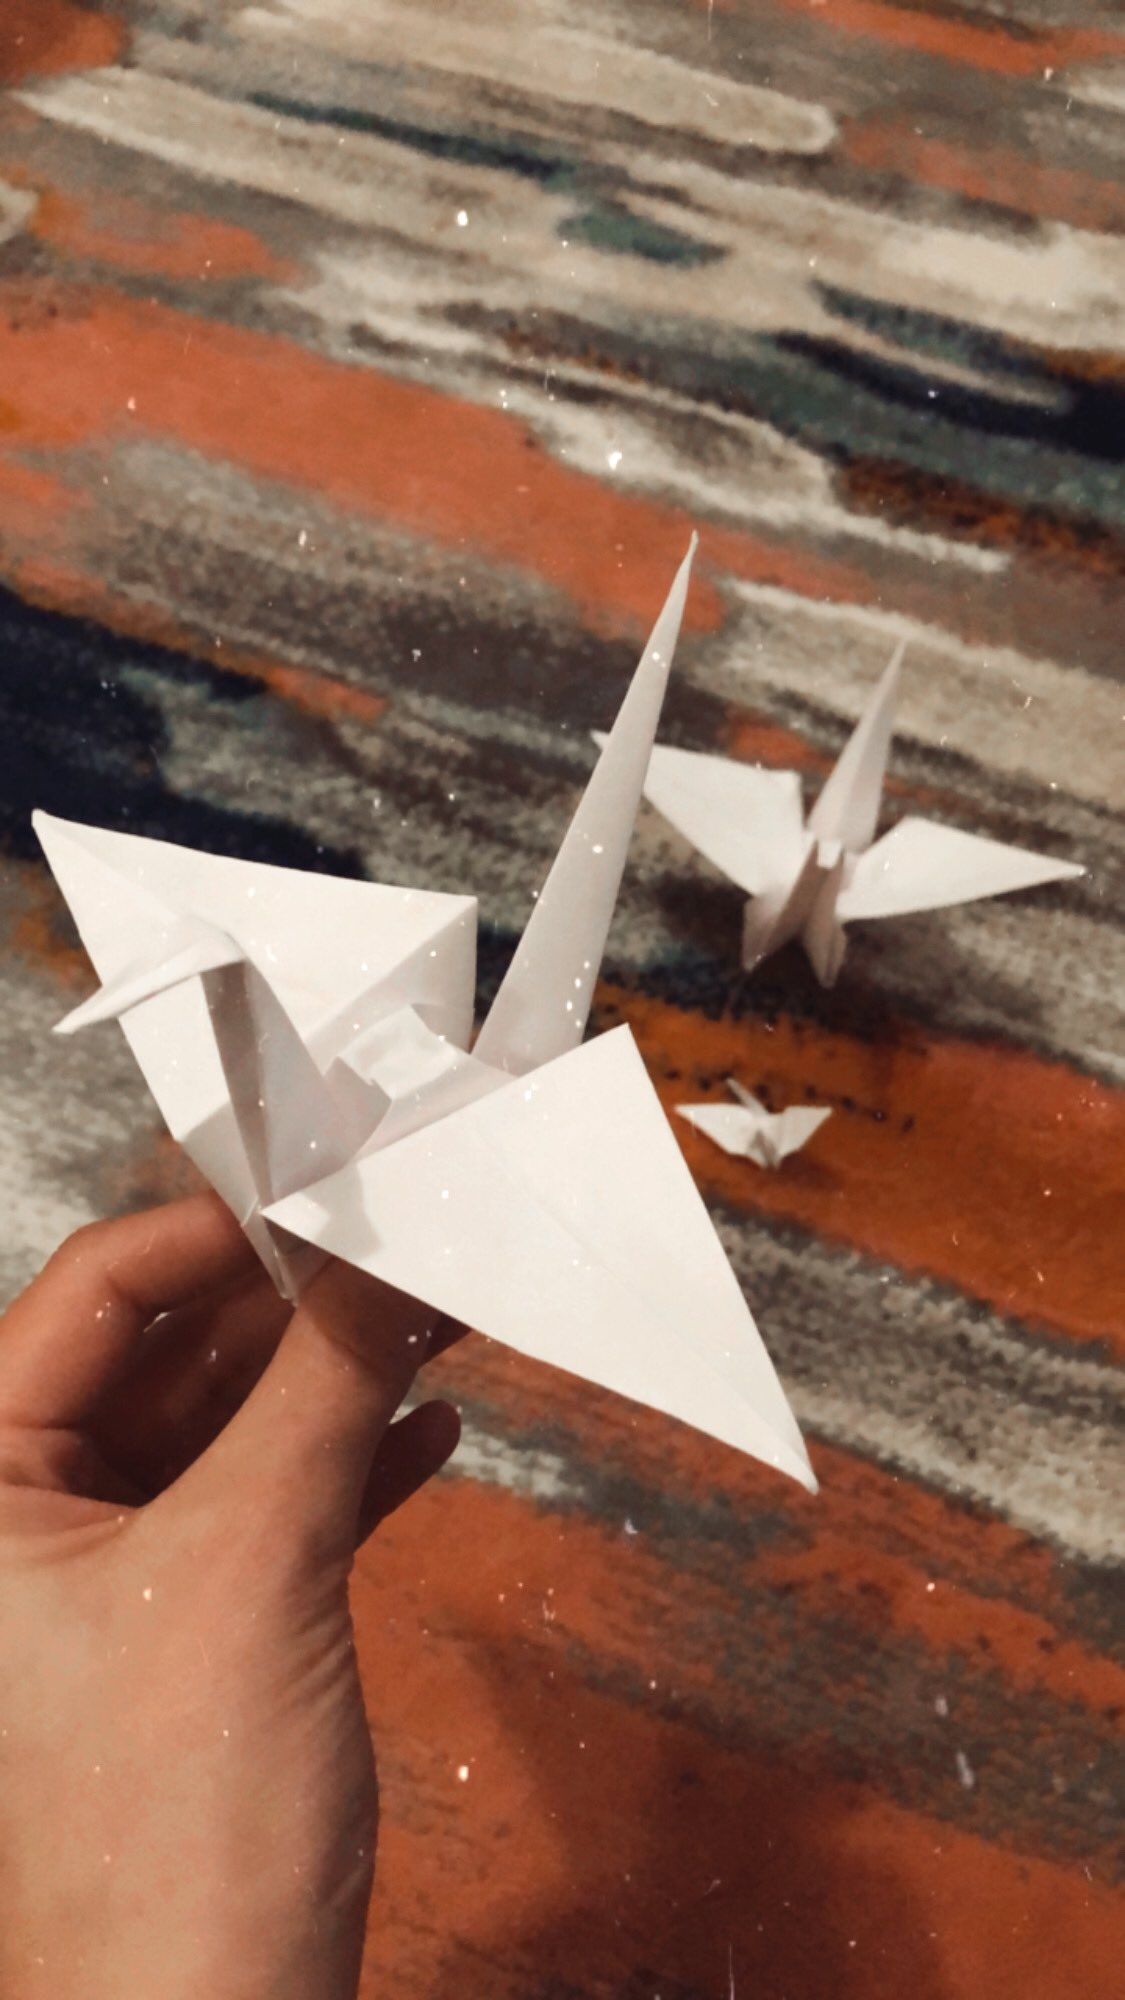 Here Are Some Of The Paper Cranes We